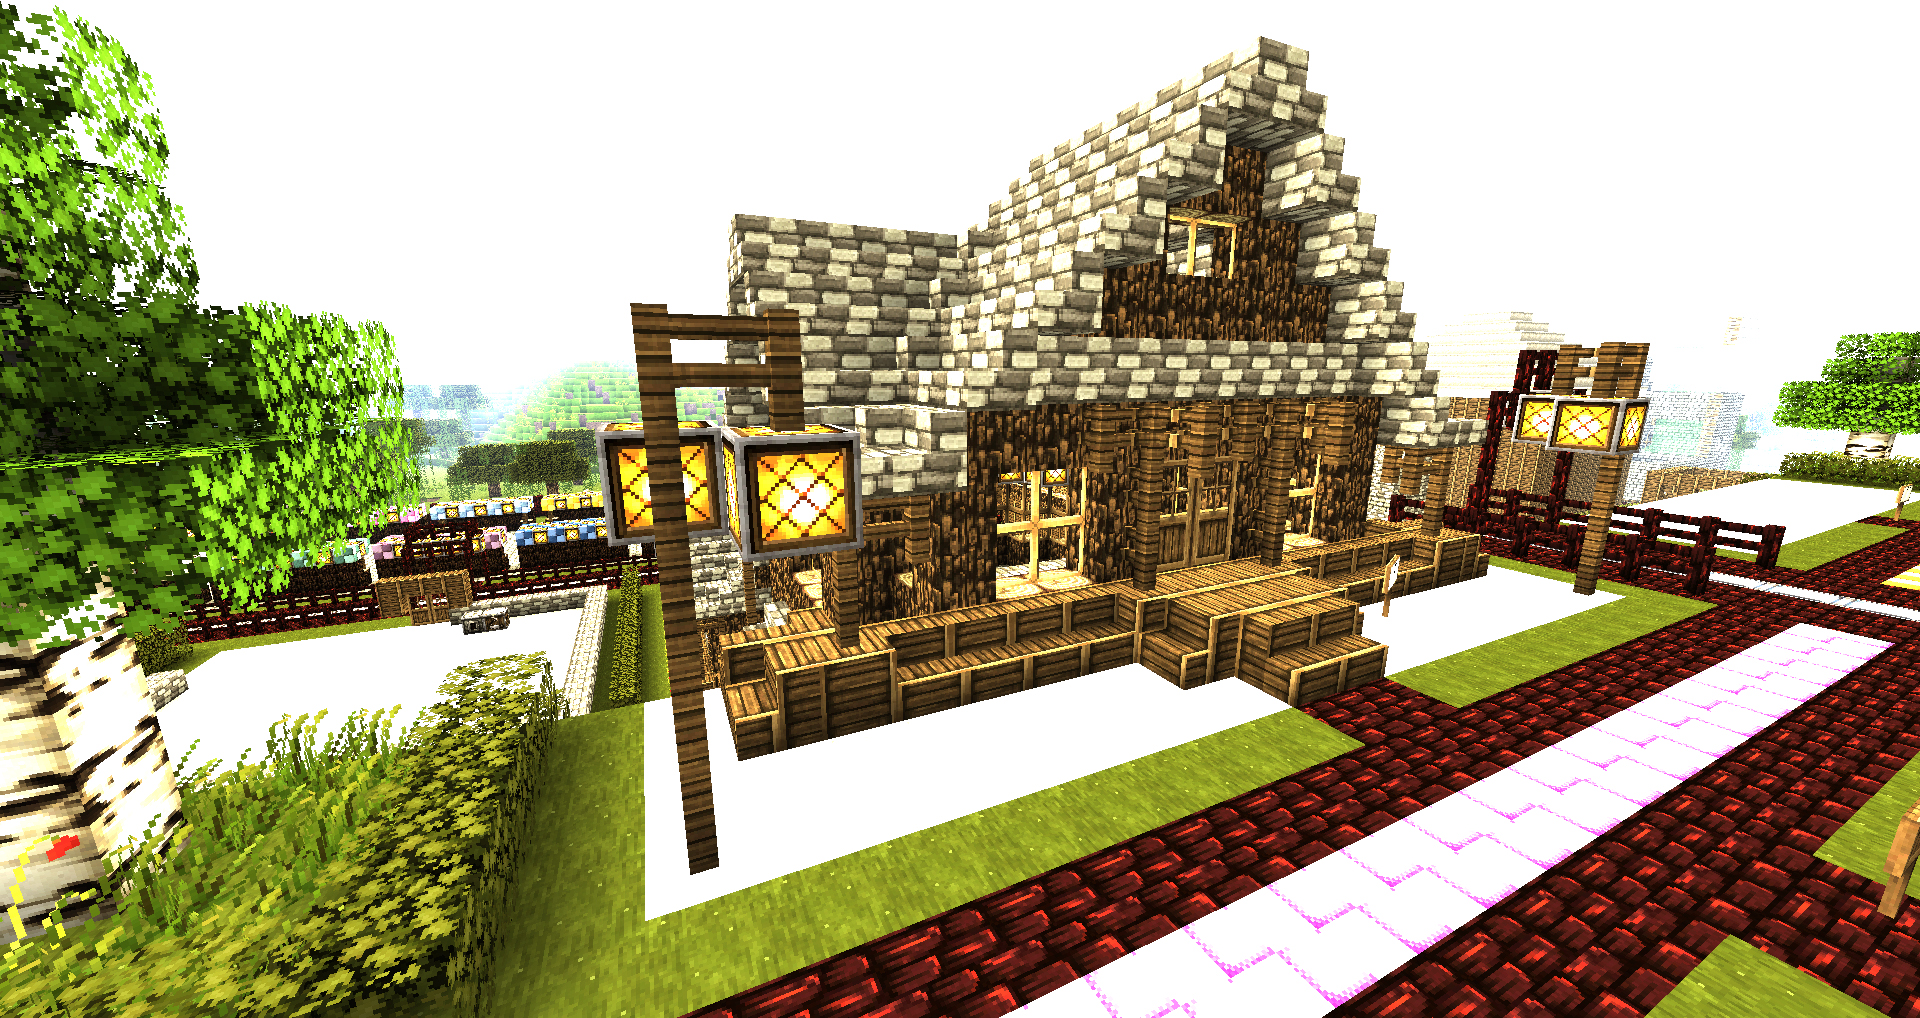 Cool Wallpaper Minecraft Houses - minecraft_wallpapers___house_by_nsgeo-d4m7xfv  Trends_163188.jpg